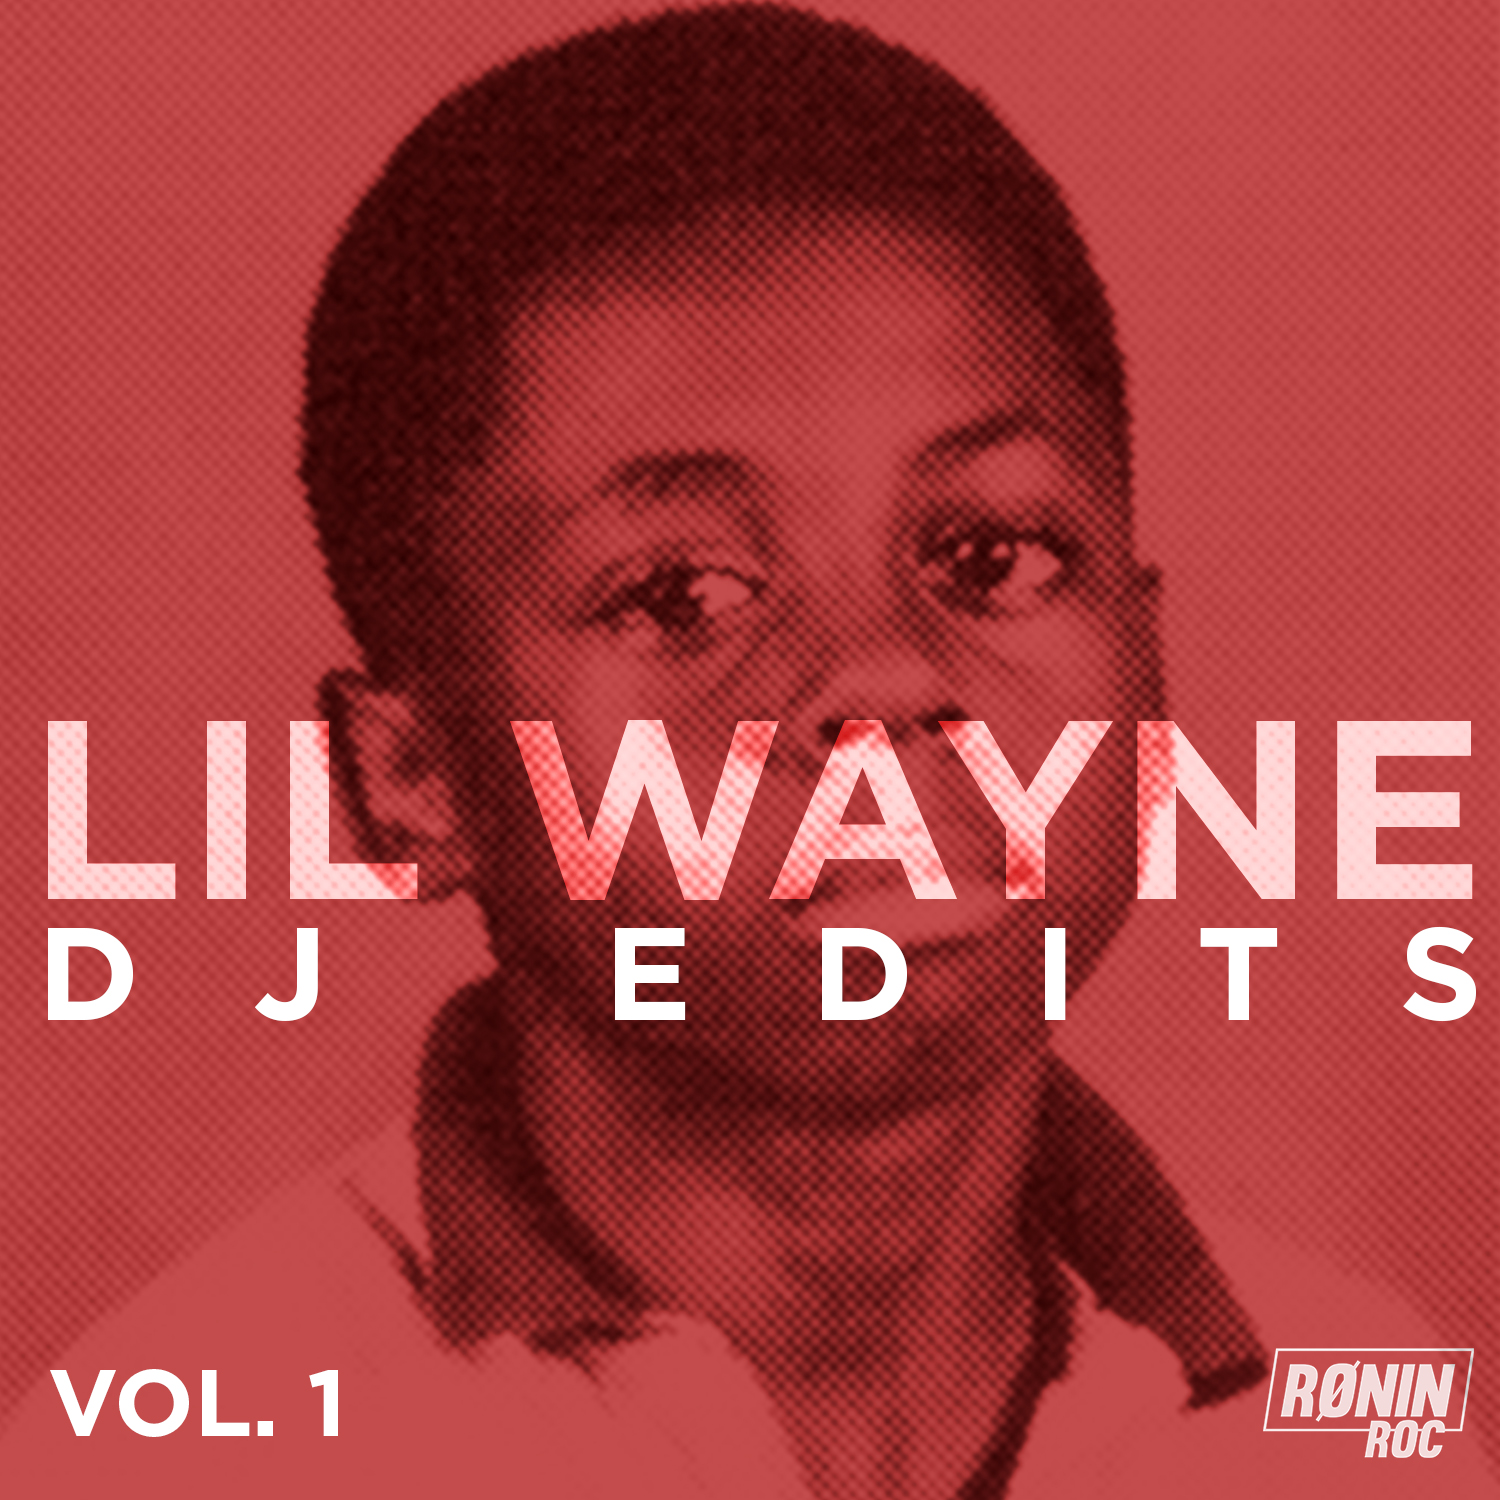 Little Wayne DJ edits.jpg